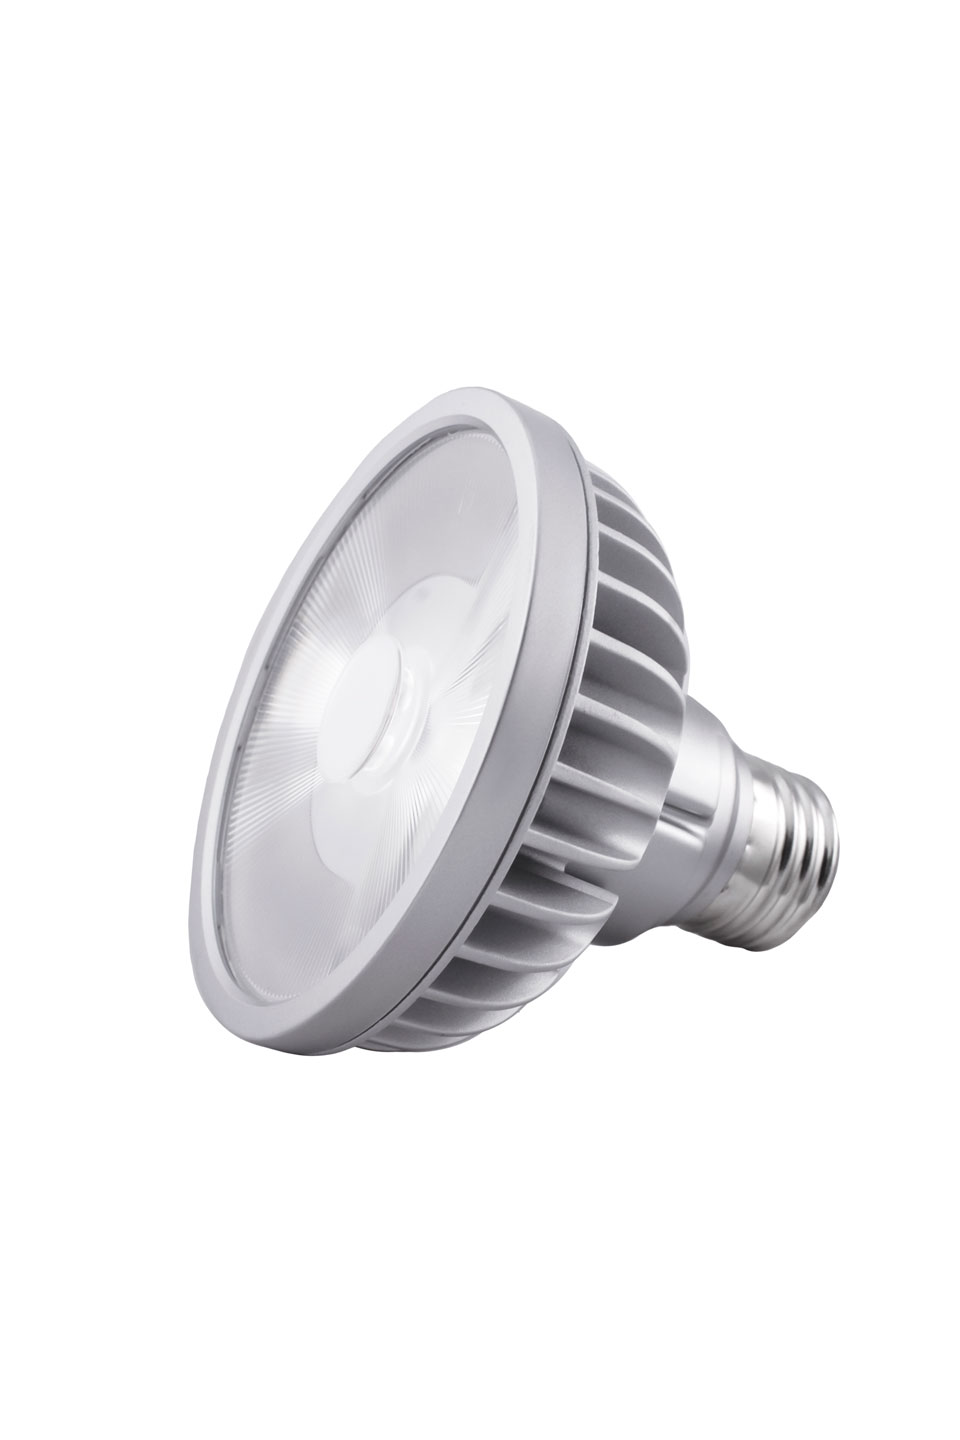 Spot bulb PAR30S LED 9 °, 2700 K (short neck). SORAA.